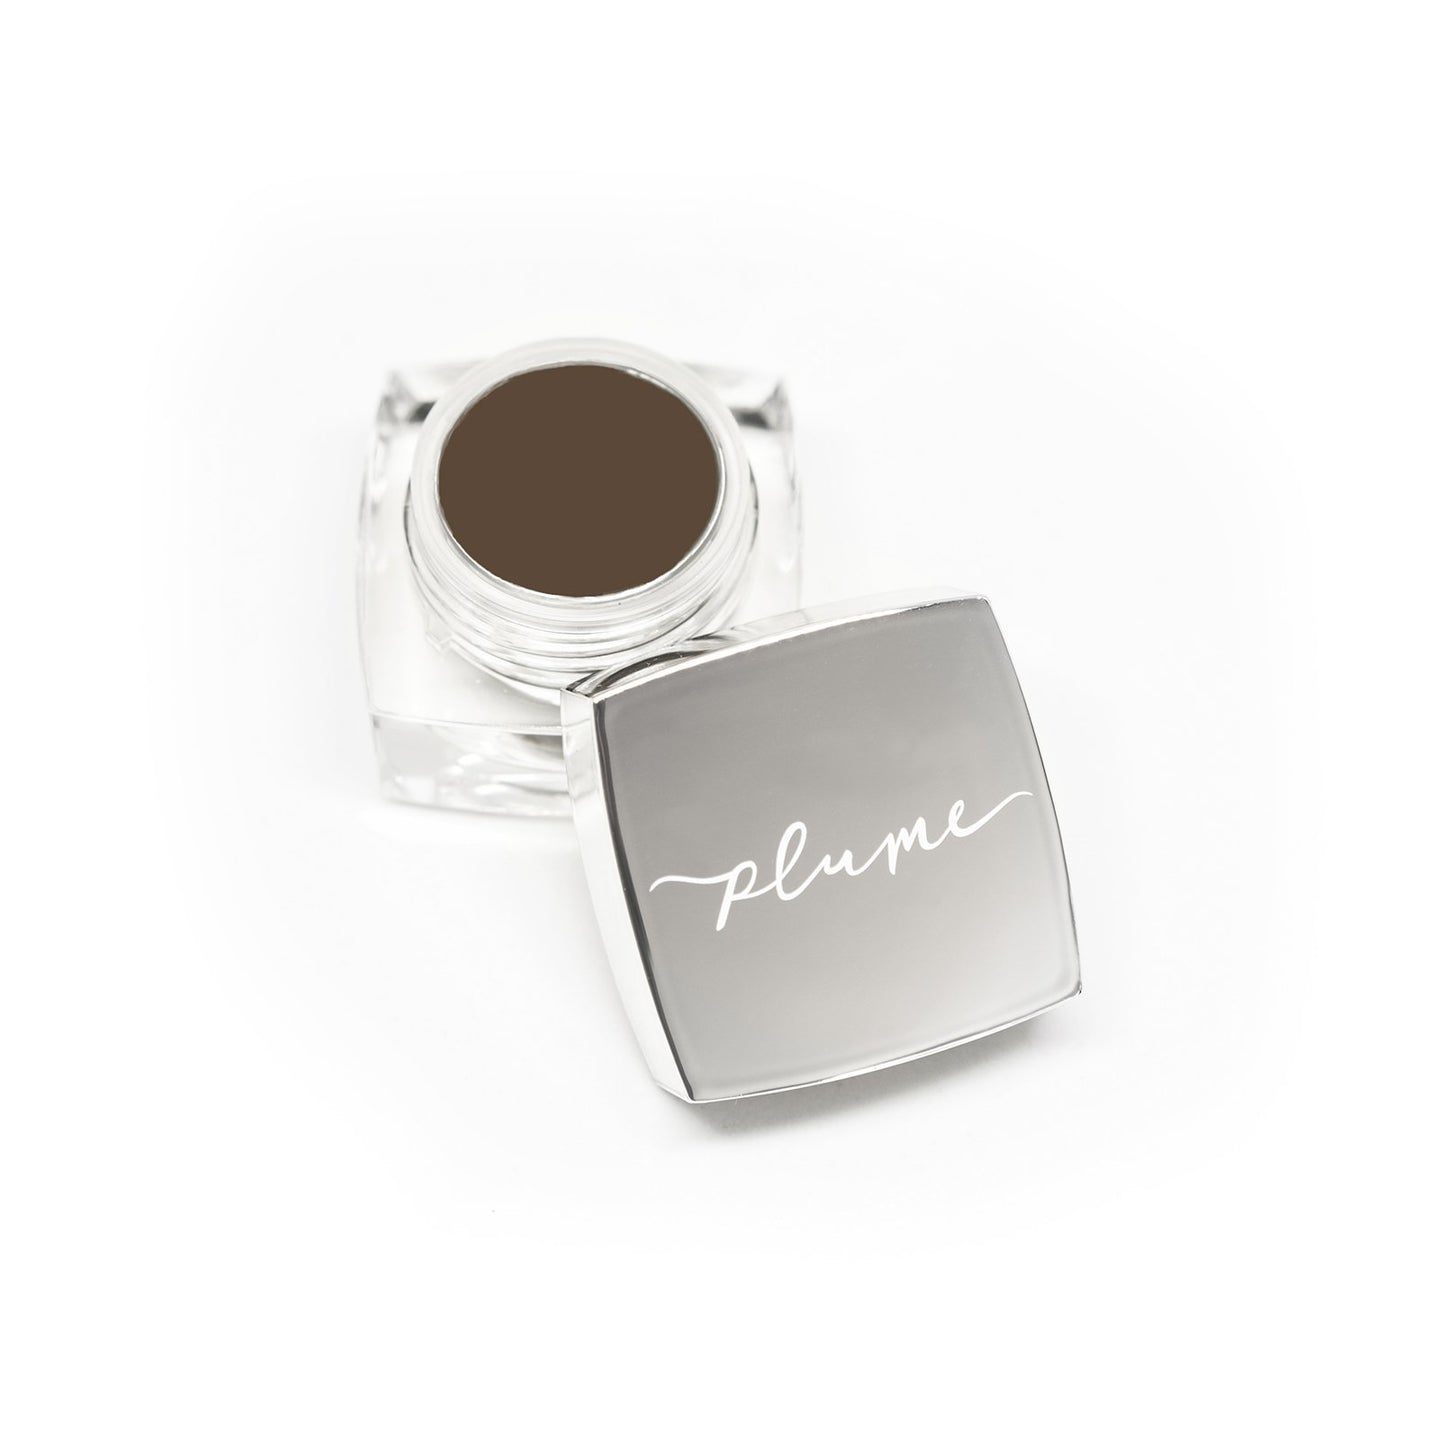 Shop Nourish & Define Brow Pomade Cinnamon Cashmere by Plume Science - Let's make it a trend #explorebeautiful eyebrows